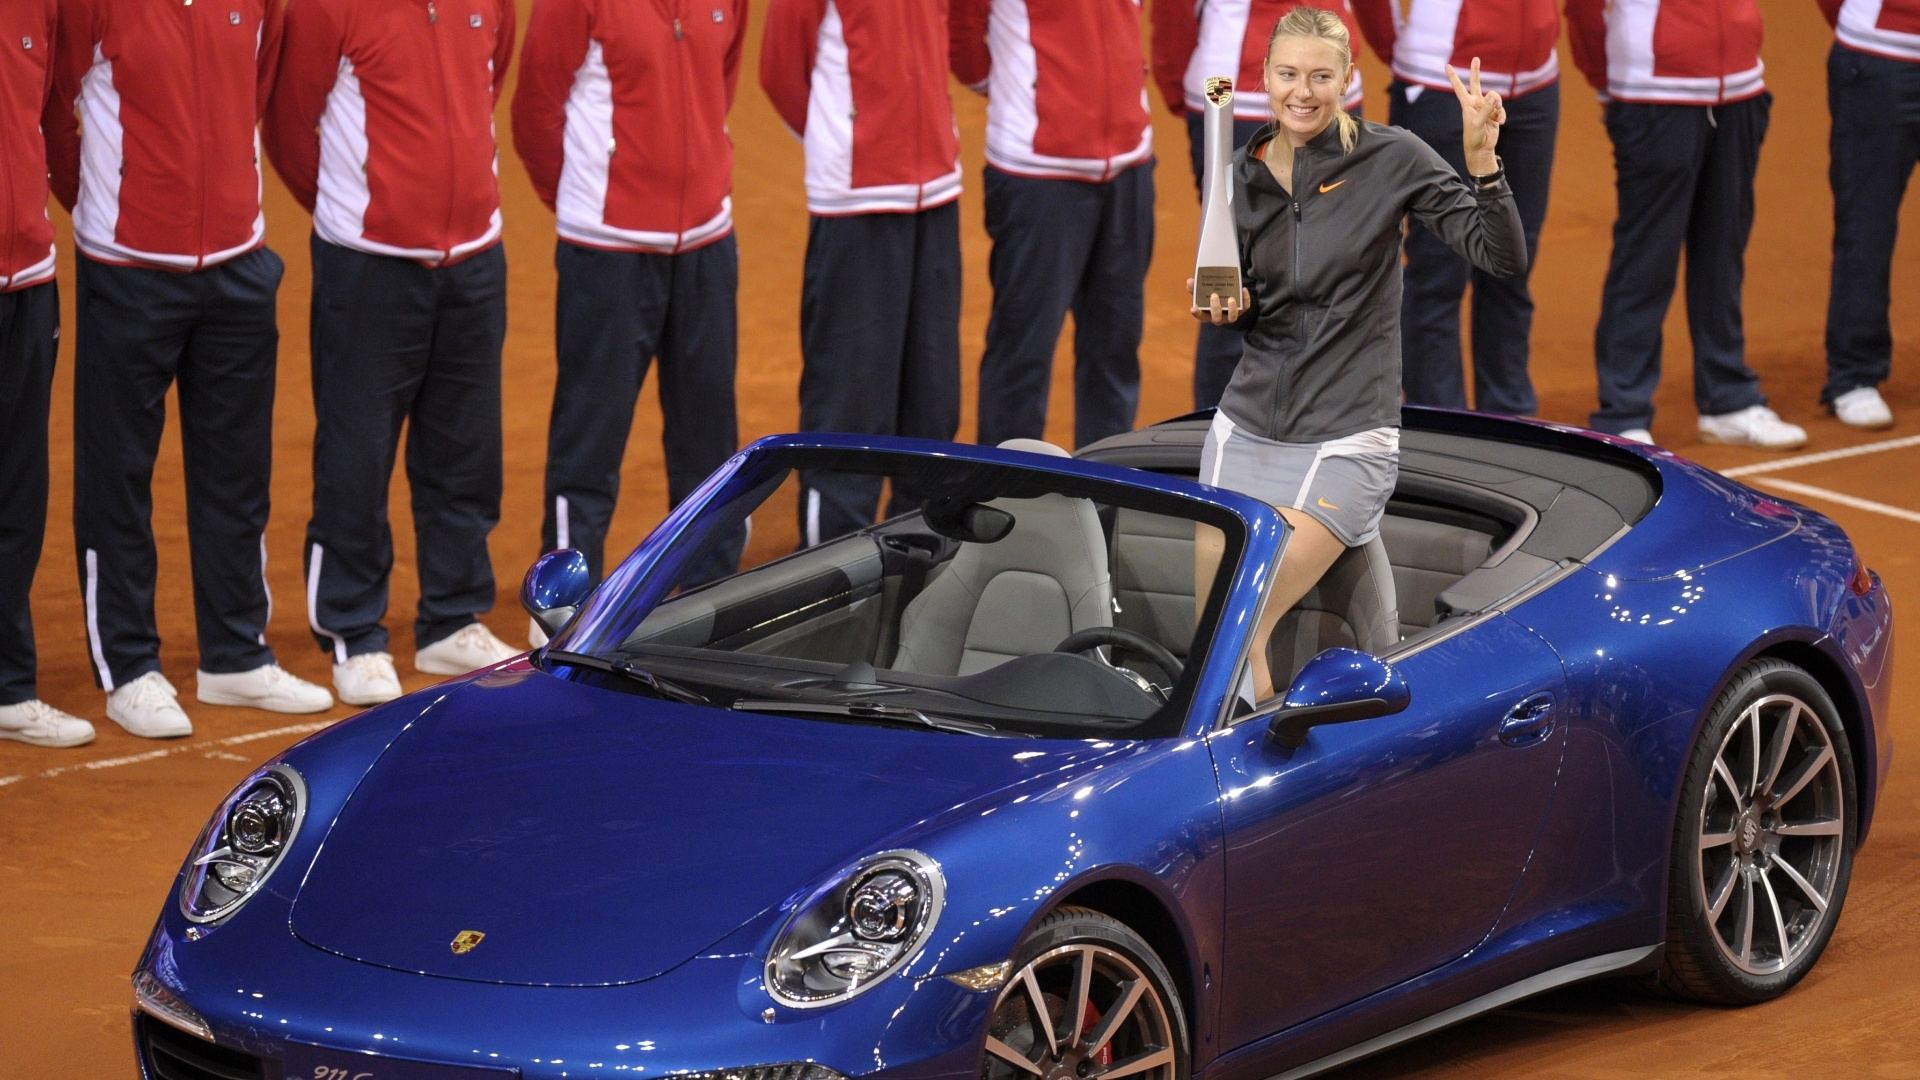 28.abr.2013 - Do Porshe 911 4S que ganhou, Maria Sharapova exibe trofu do Torneio de Stuttgart, na Alemanha